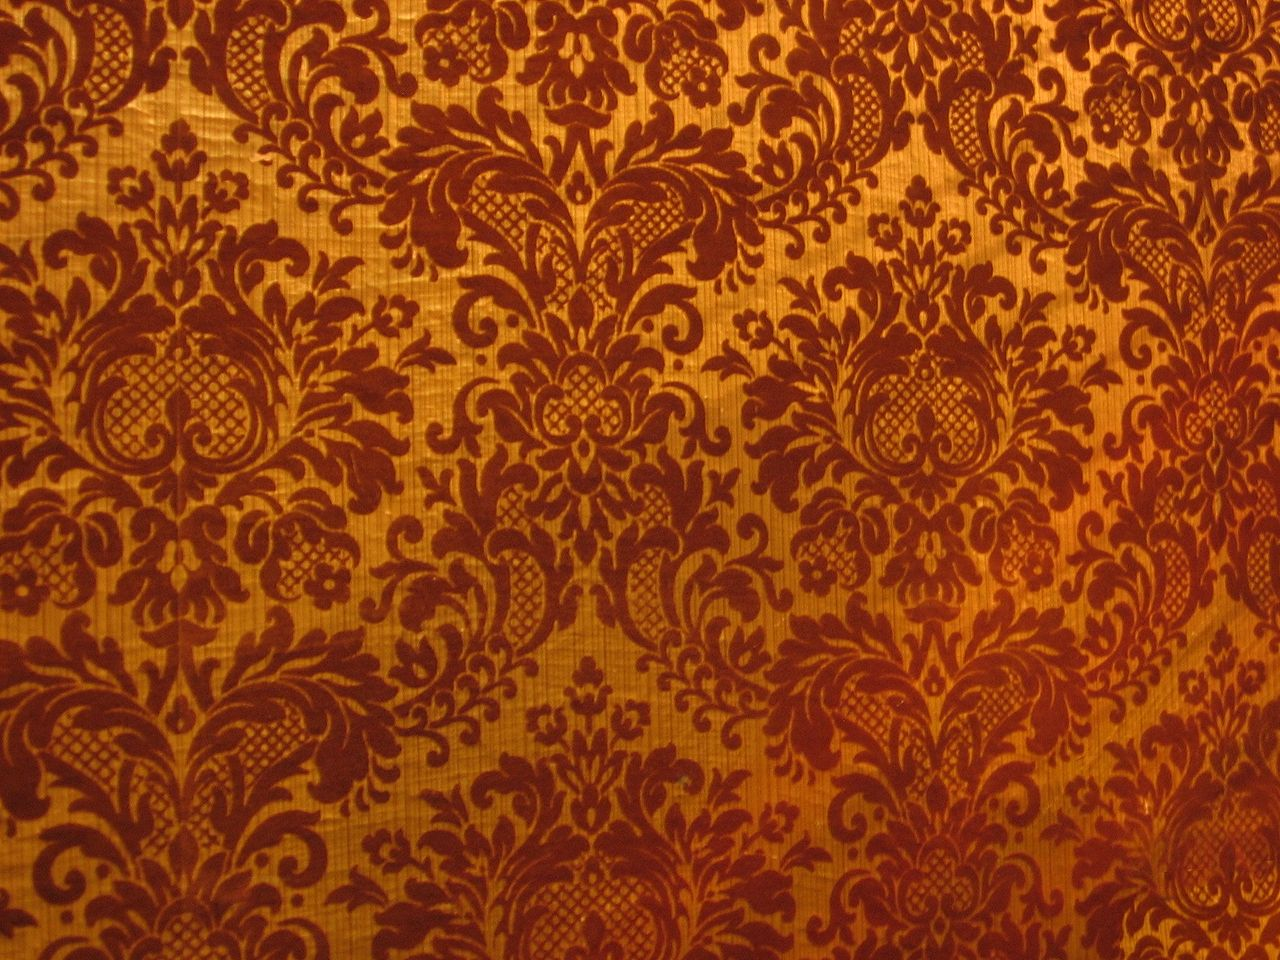 File:Textured Wallpaper.jpg - Wikimedia Commons